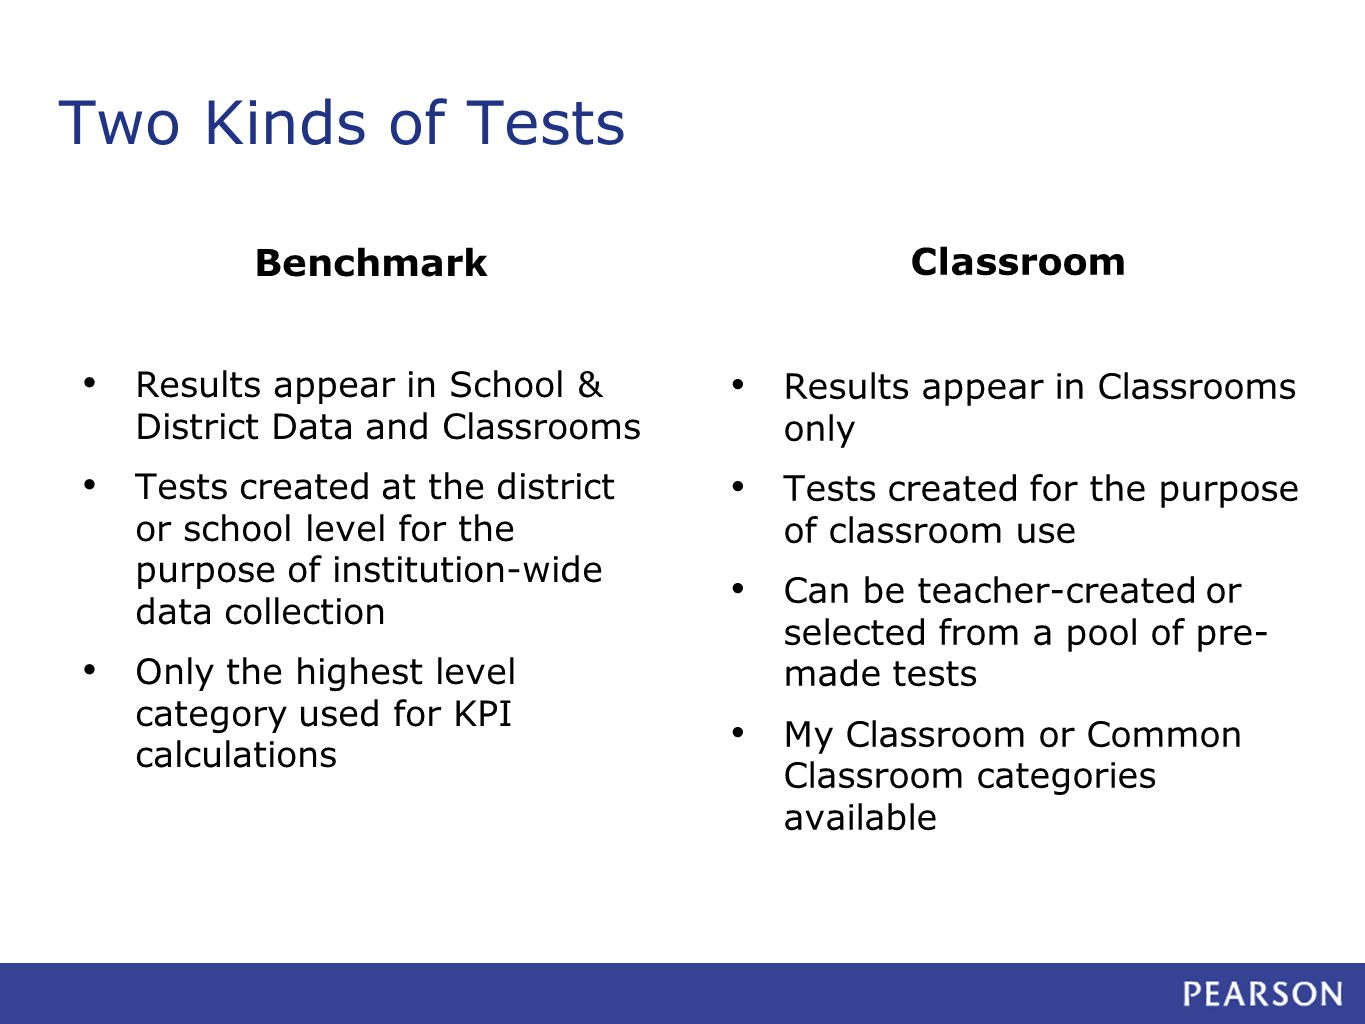 Two Kinds of Tests Benchmark Results appear in School & District Data and Classrooms Tests created at the district or school level for the purpose of institution-wide data collection Only the highest level category used for KPI calculations Classroom Results appear in Classrooms only Tests created for the purpose of classroom use Can be teacher-created or selected from a pool of pre- made tests My Classroom or Common Classroom categories available